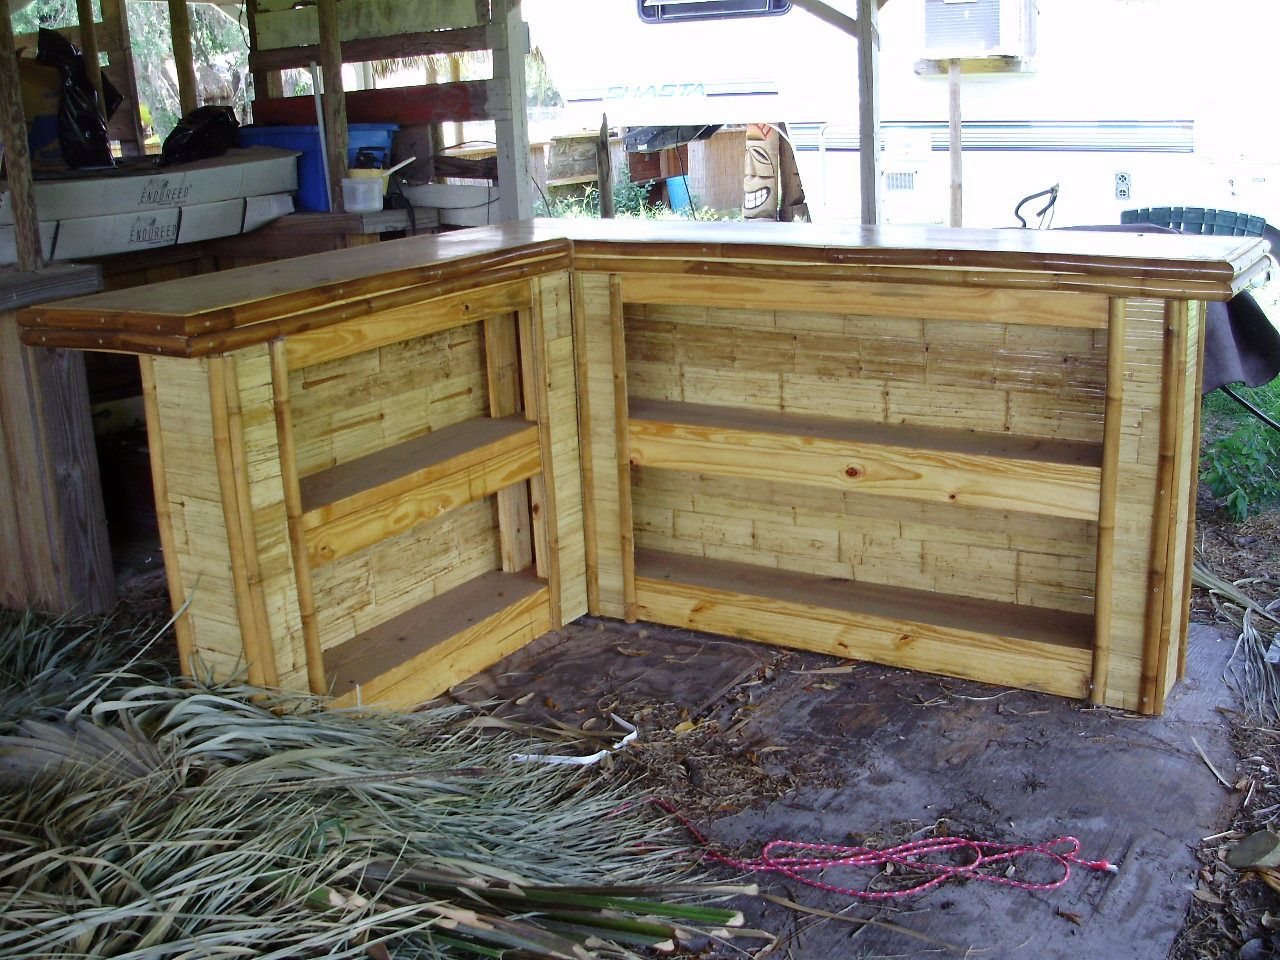 How to build an outdoor bar shaped small flattened bamboo board tiki bar with no roof - Bamboo bar design ideas ...